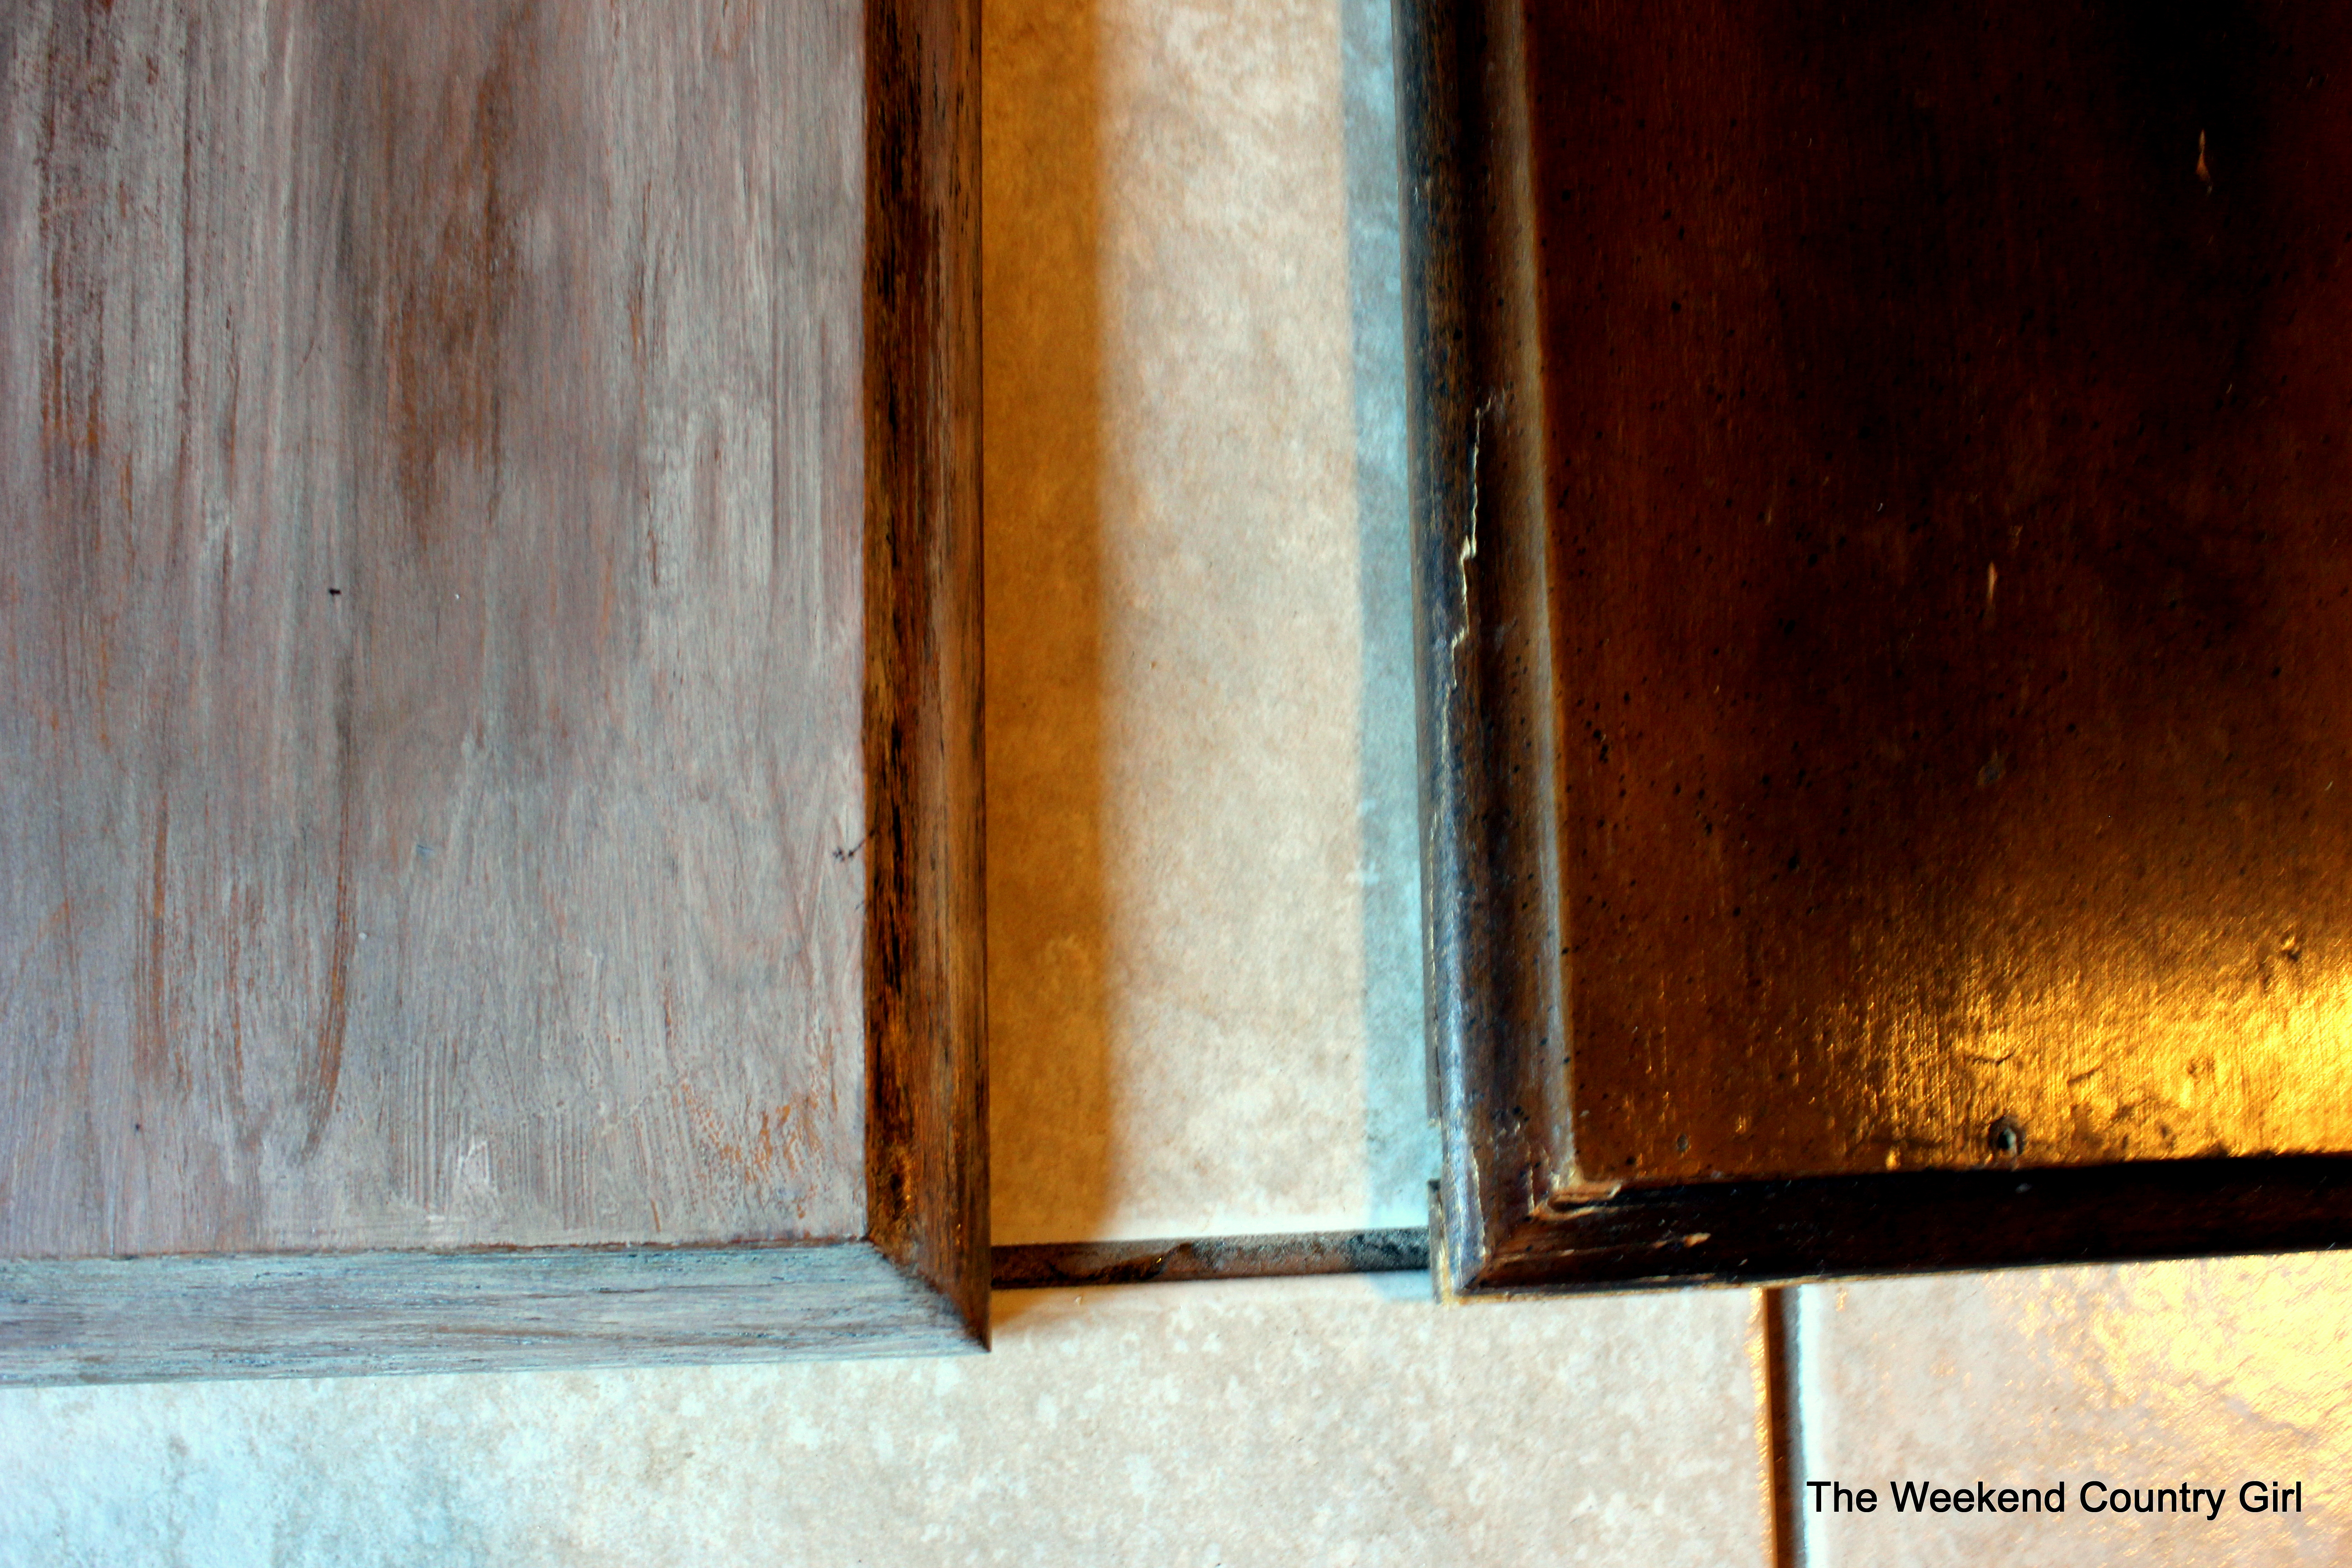 Refinishing a wood bathroom vanity part 1 preparation amp stripping - Weathered Wood Stain Tutorail10 By The Weekend Country Girl On Remodelaholic